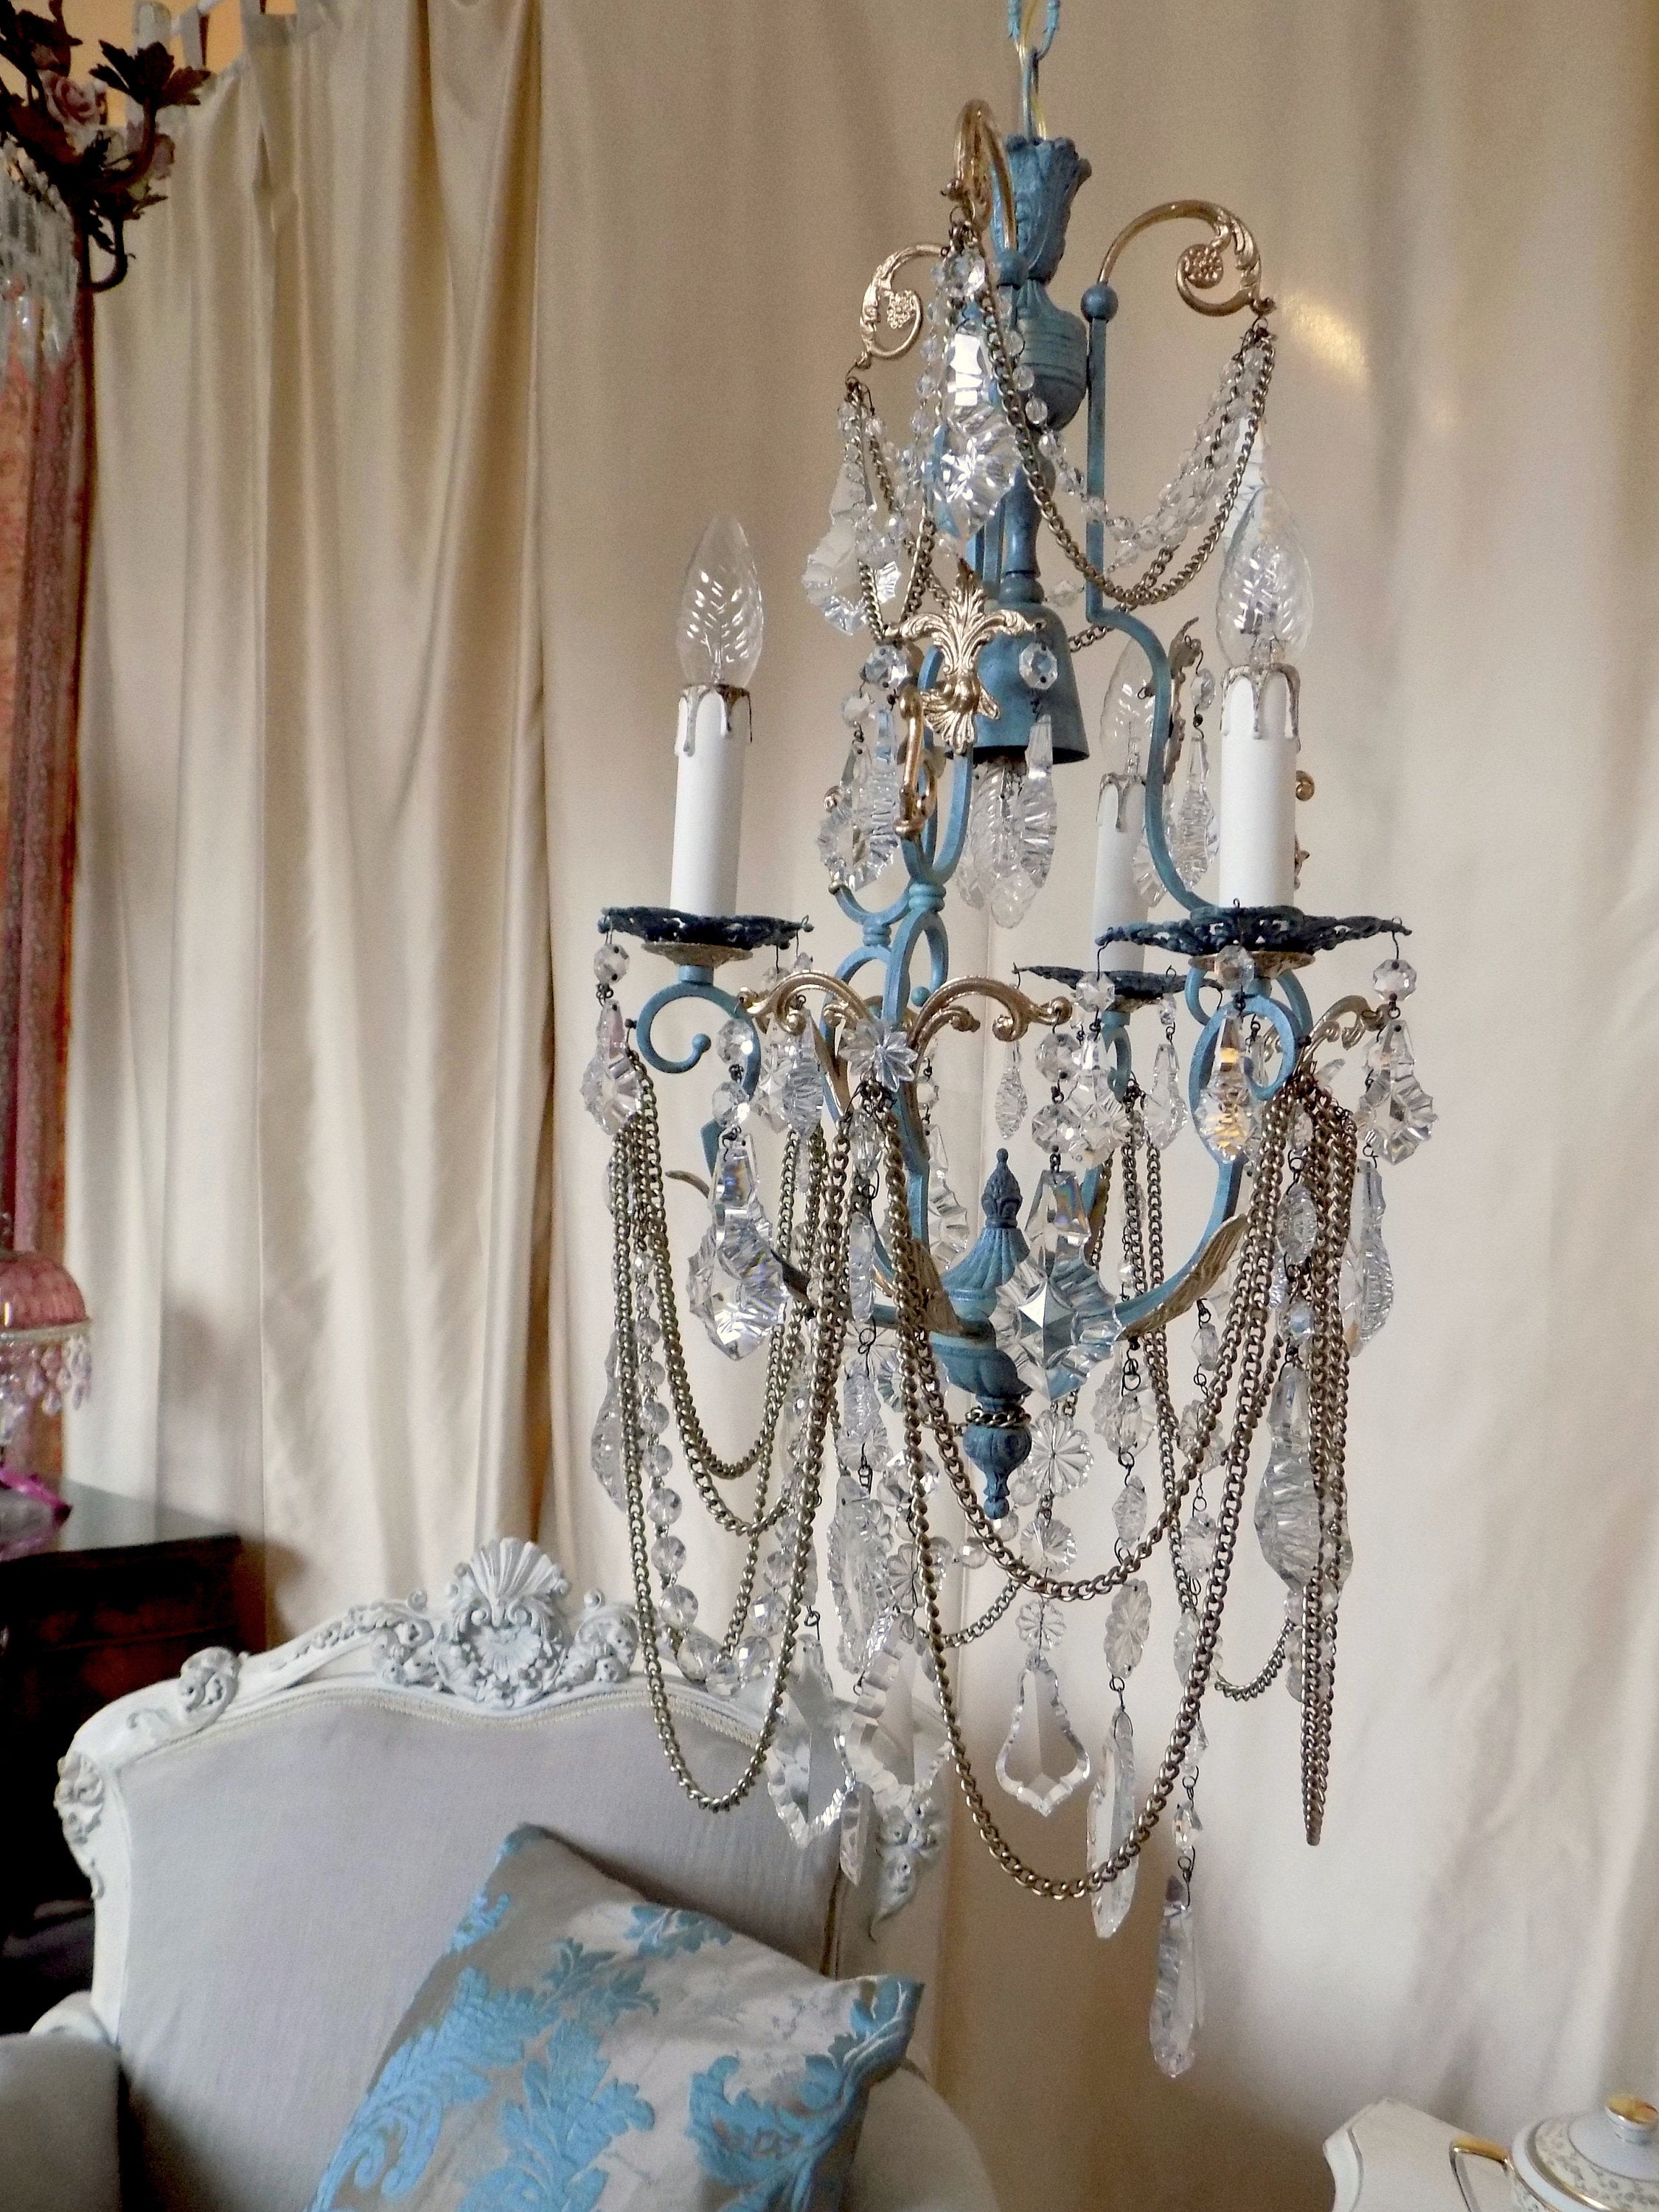 Luxury antique style chandelier robin egg blue and gold